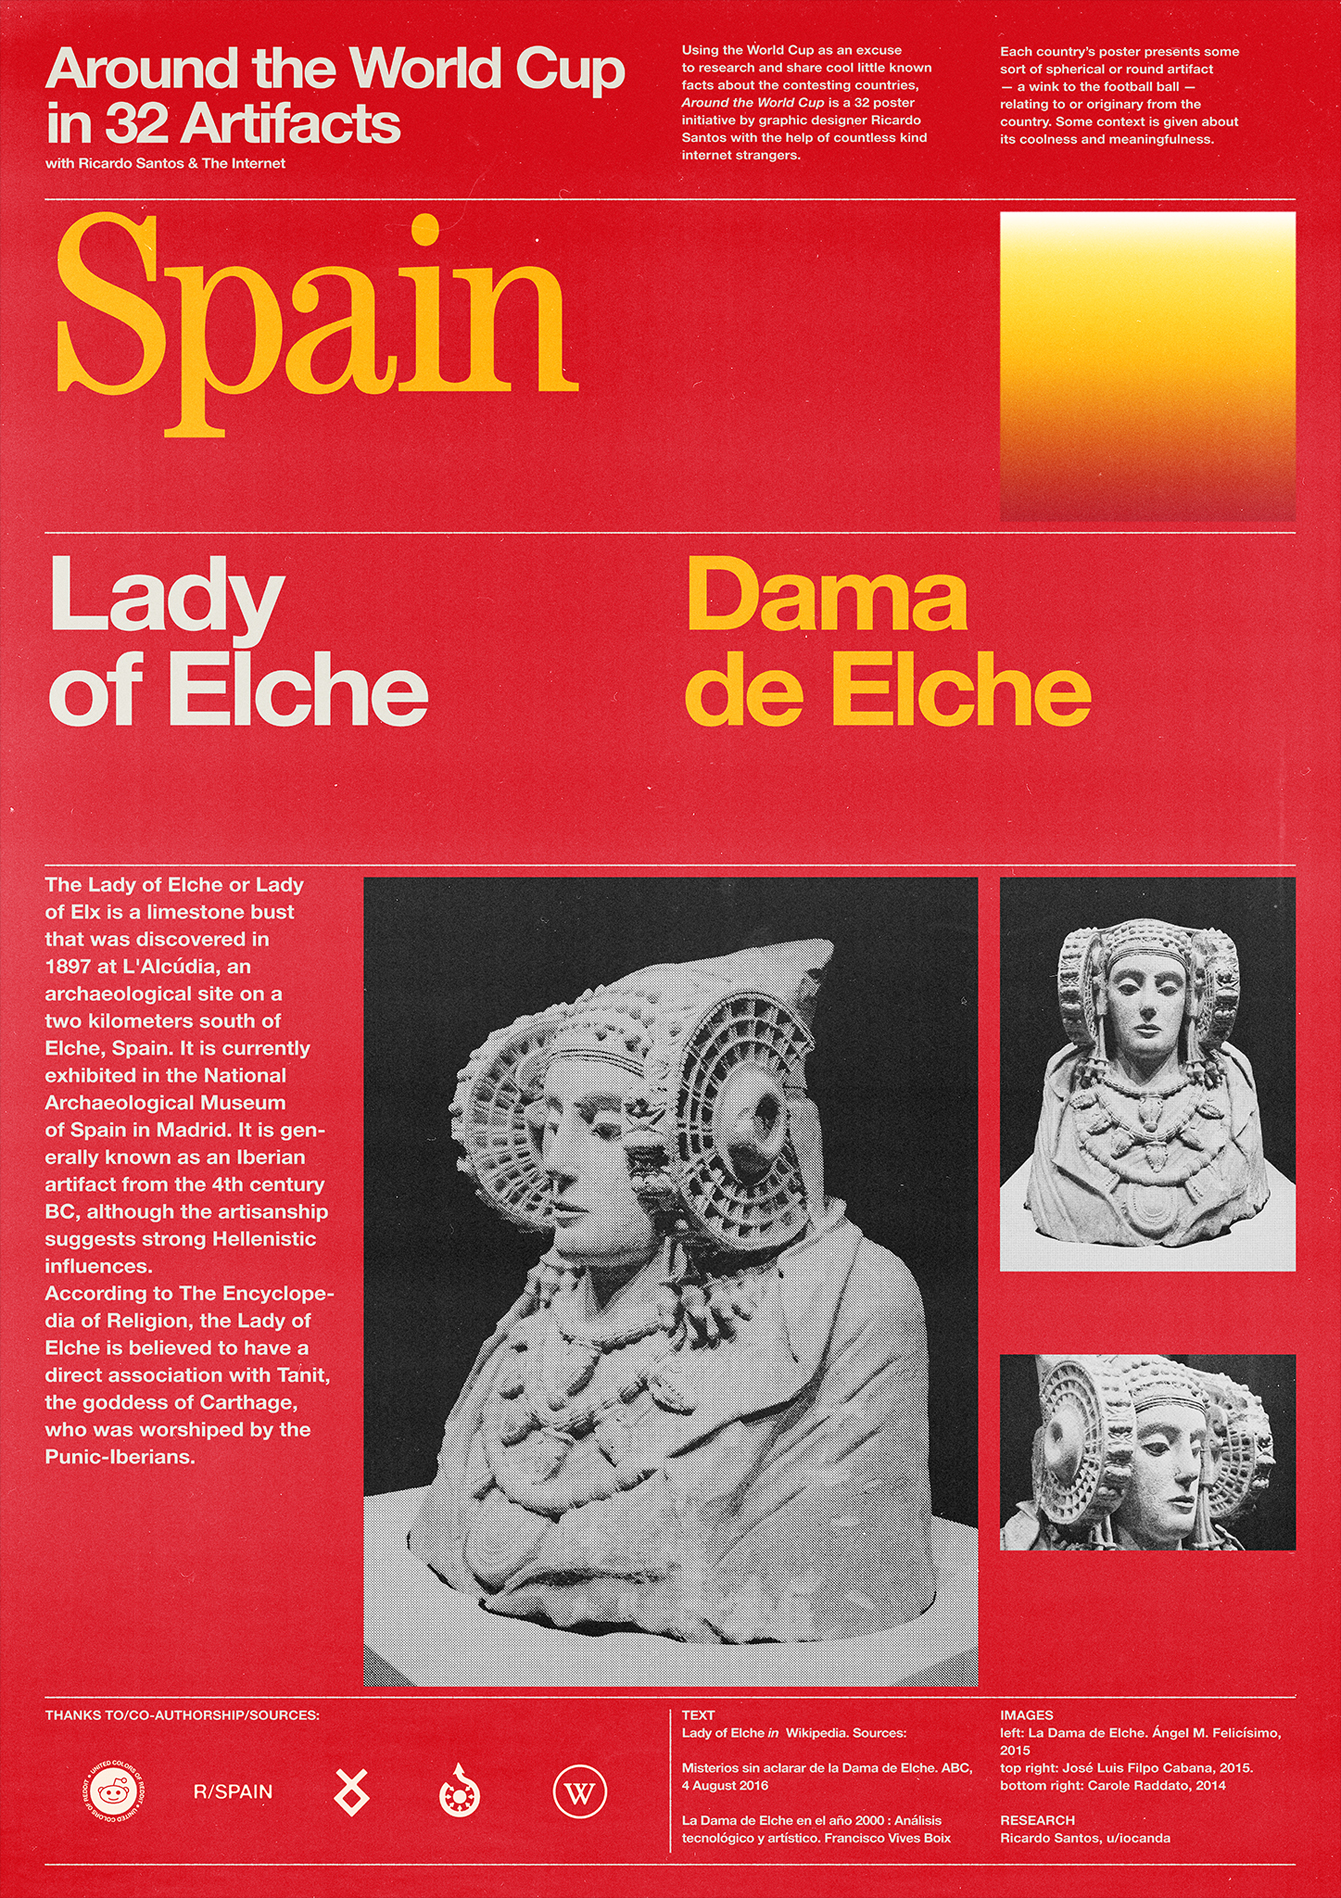 Spain poster: Lady of Elche